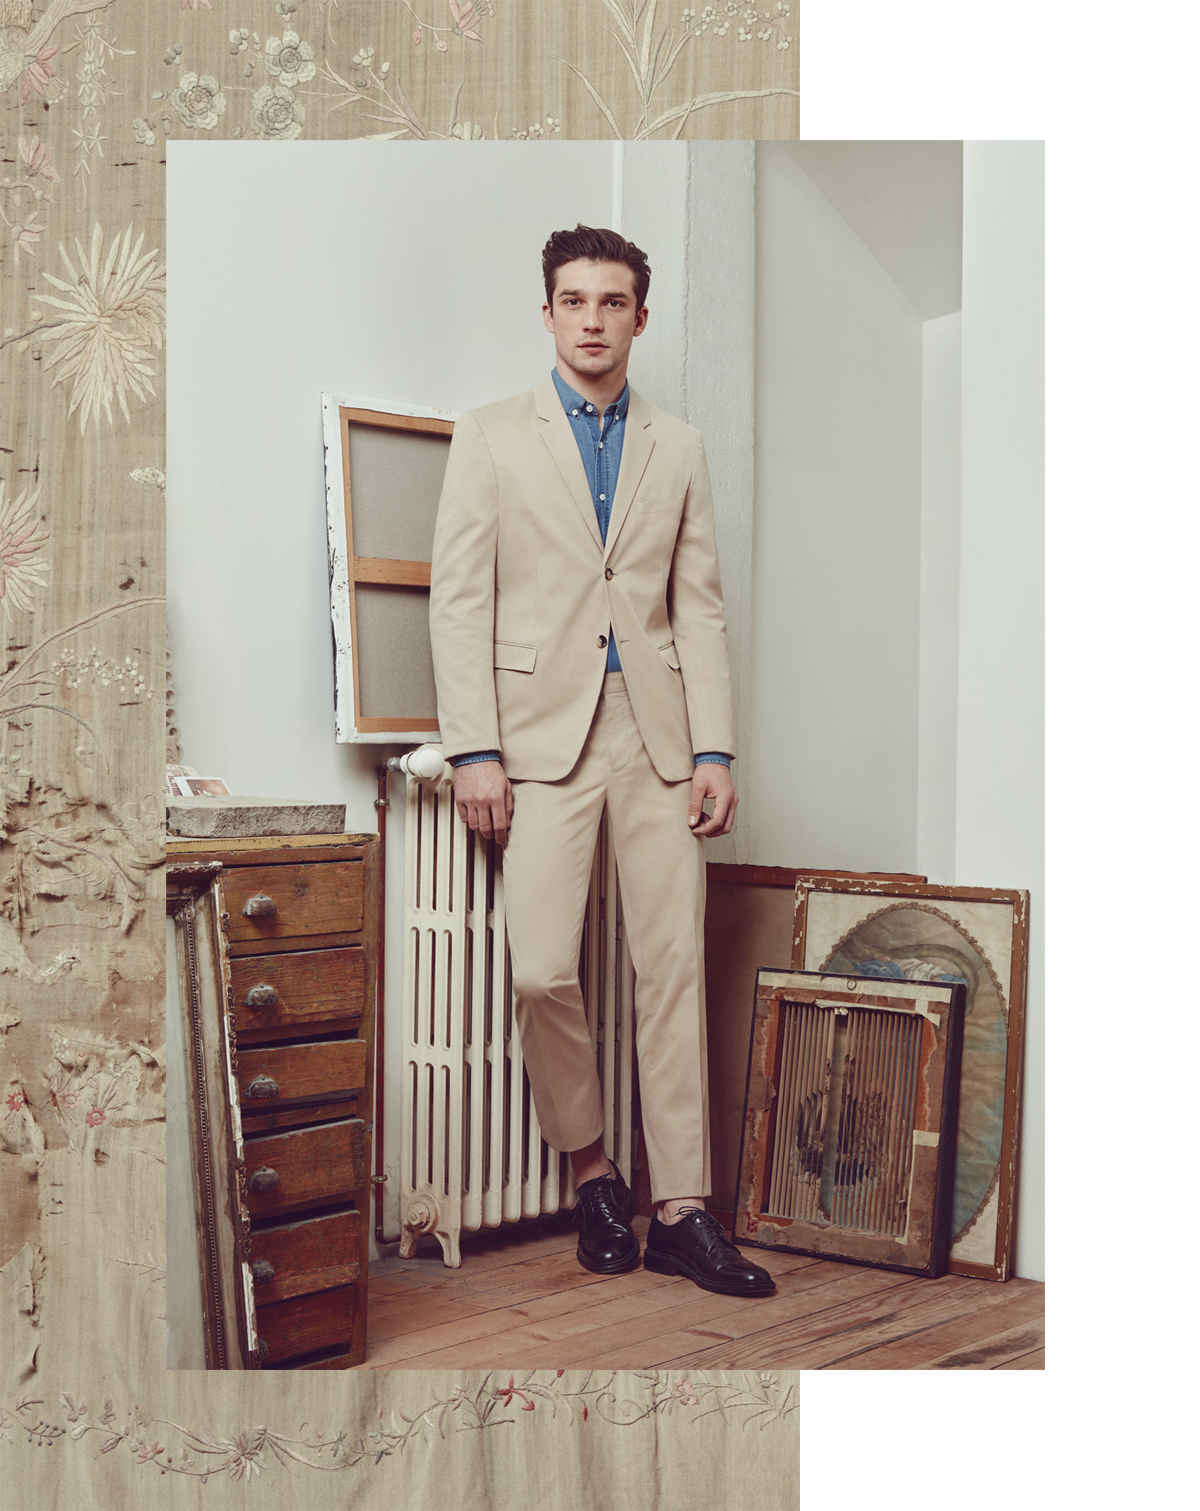 balibaris-ss16-menswear-suit-costume